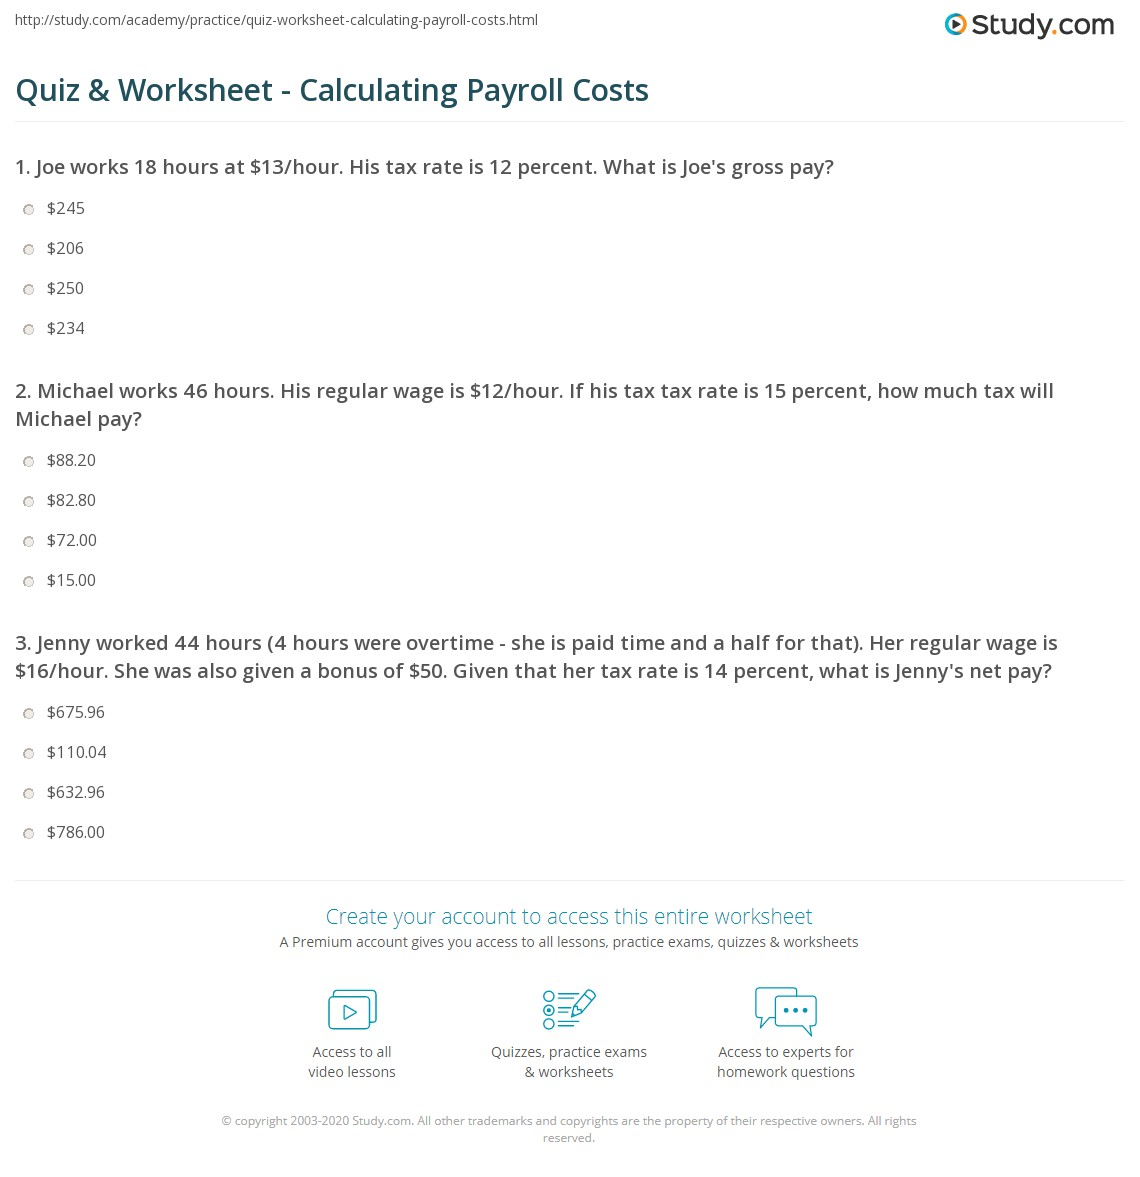 math worksheet : quiz  worksheet  calculating payroll costs  study  : Business Math Worksheets